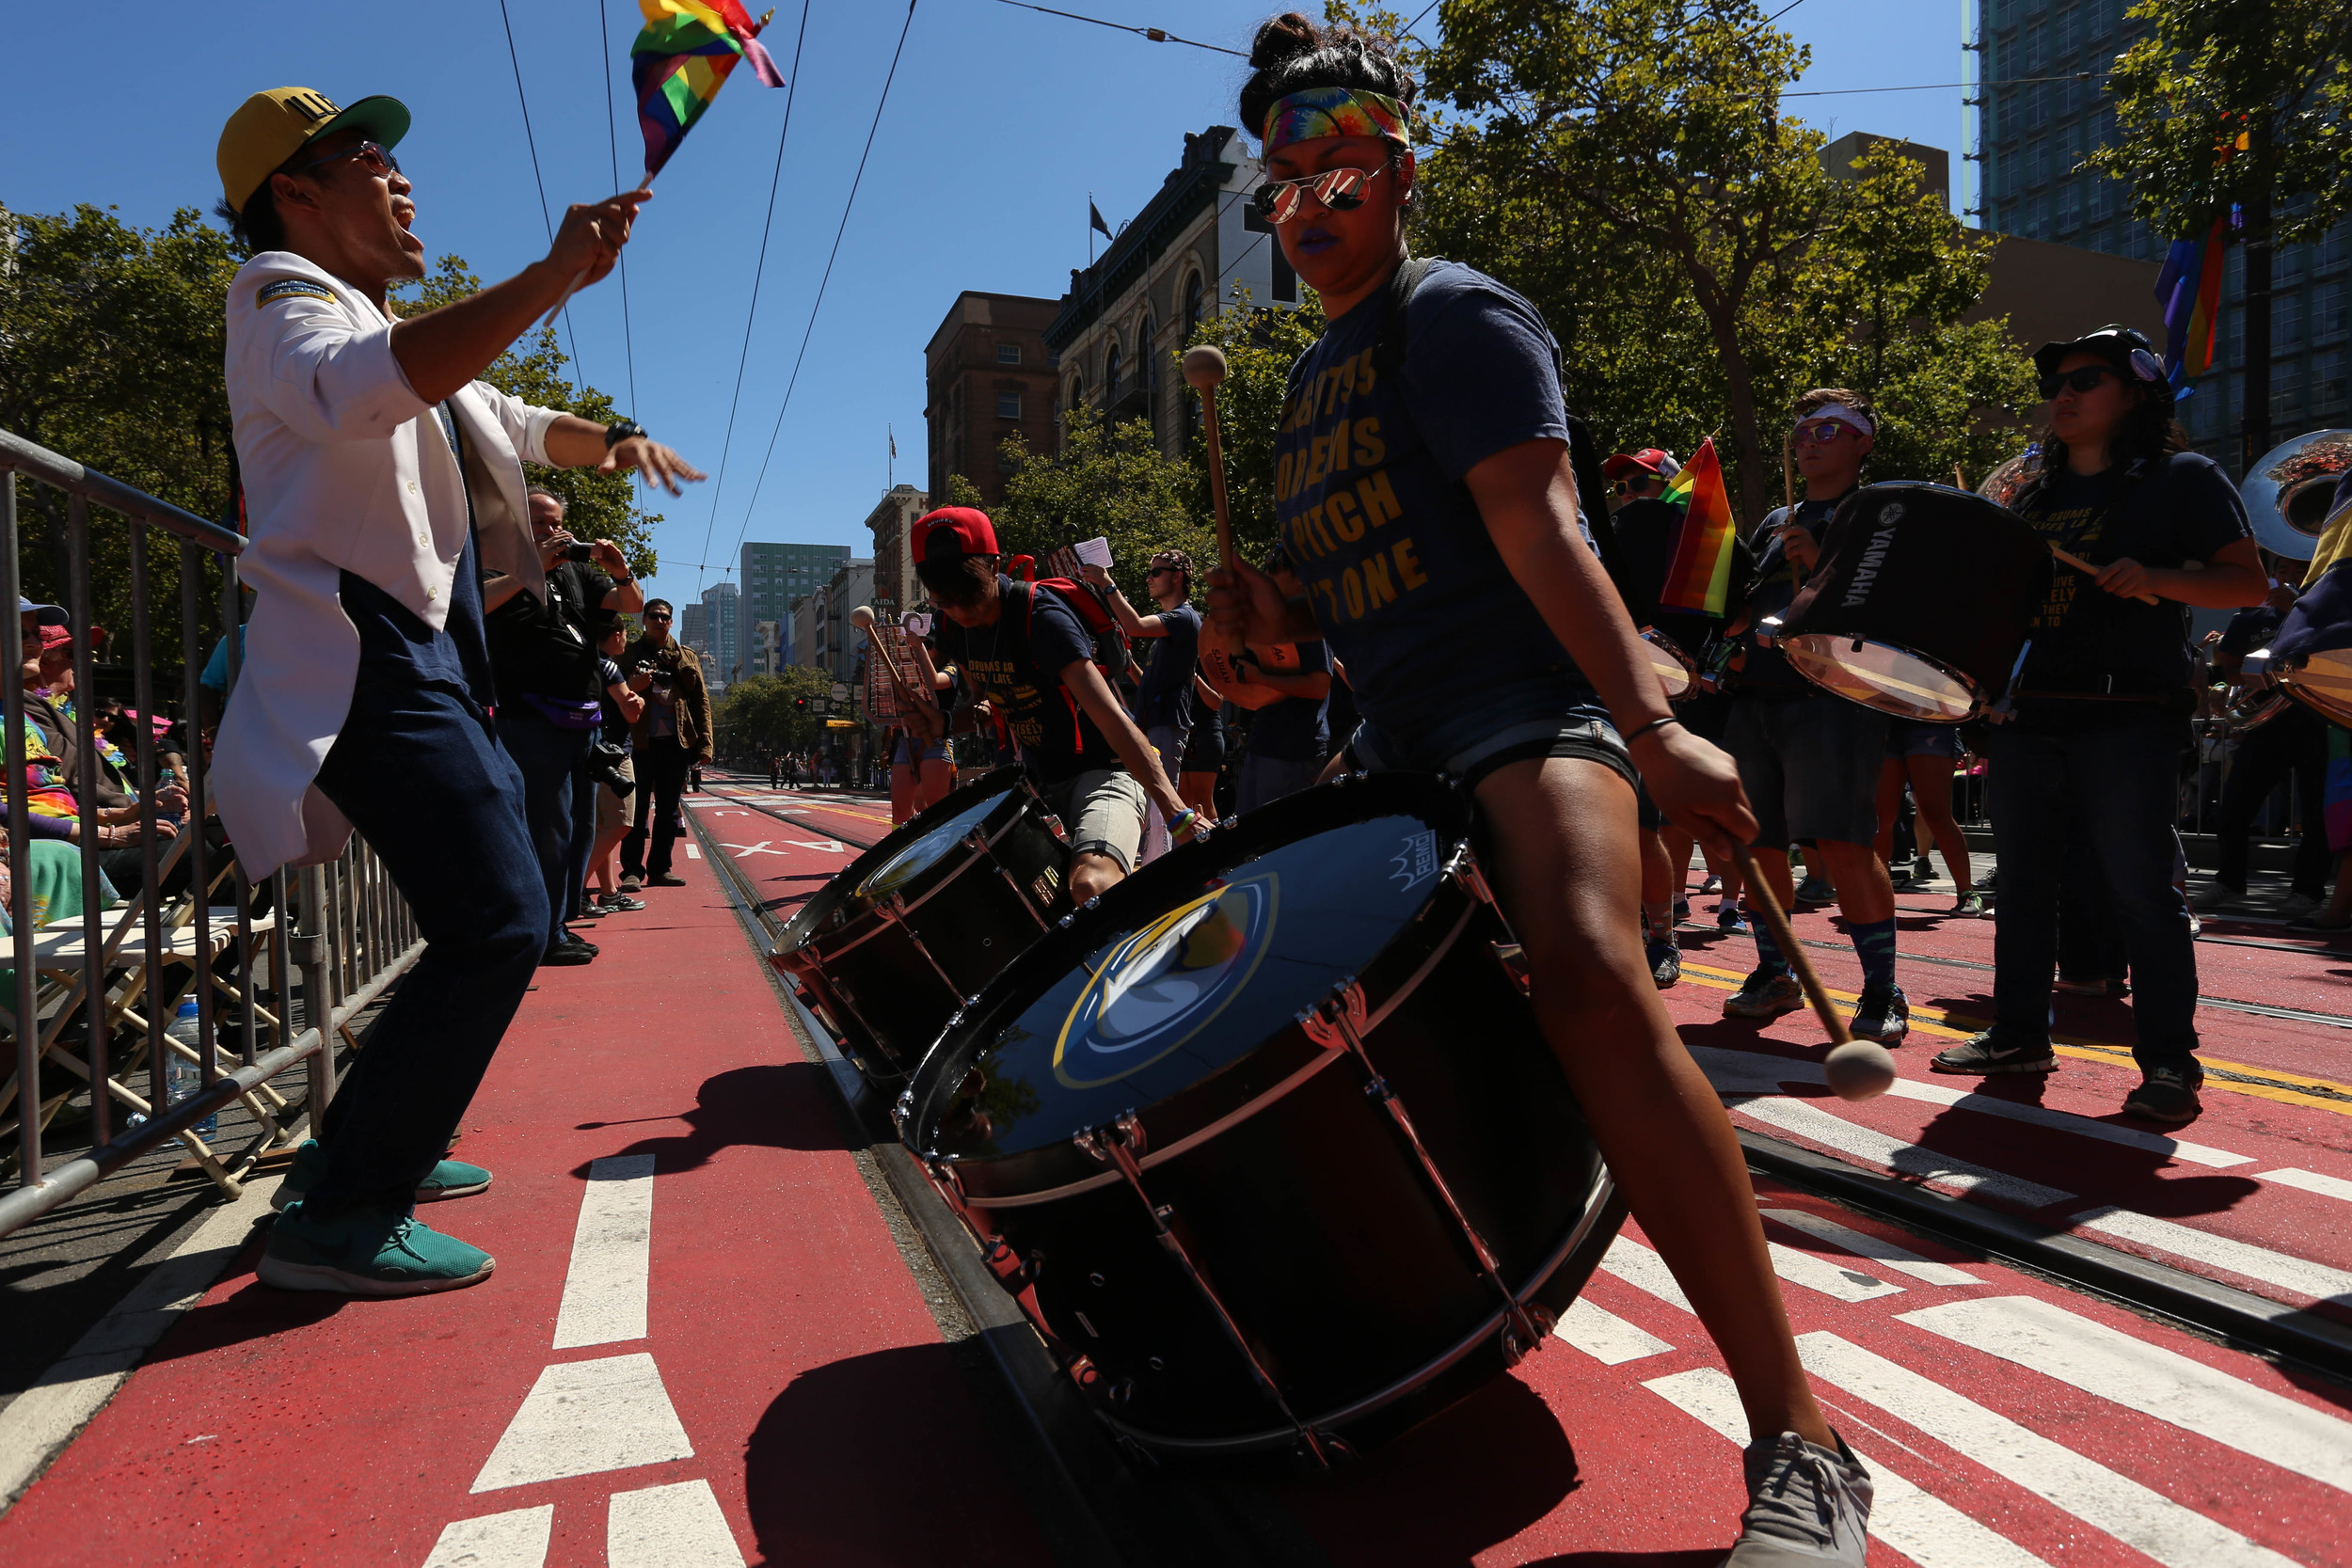 The California Aggie Marching Band stops to perform for the crowd as thousands gathered to celebrate Pride in San Francisco, Cali. Sunday, June 26, 2016.